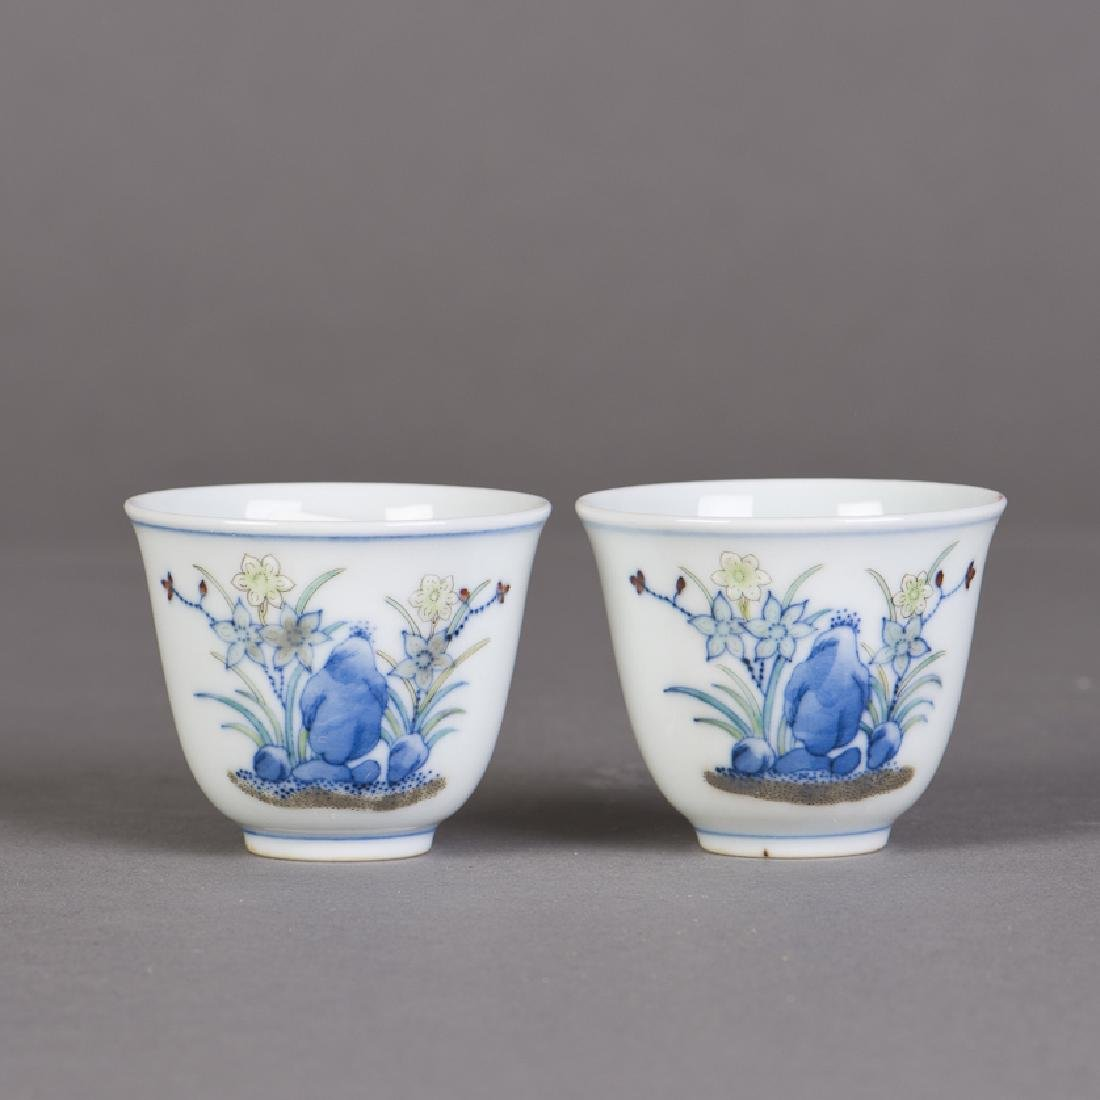 A PAIR OF SMALL CHINESE DOUCAI PORCELAIN CUPS